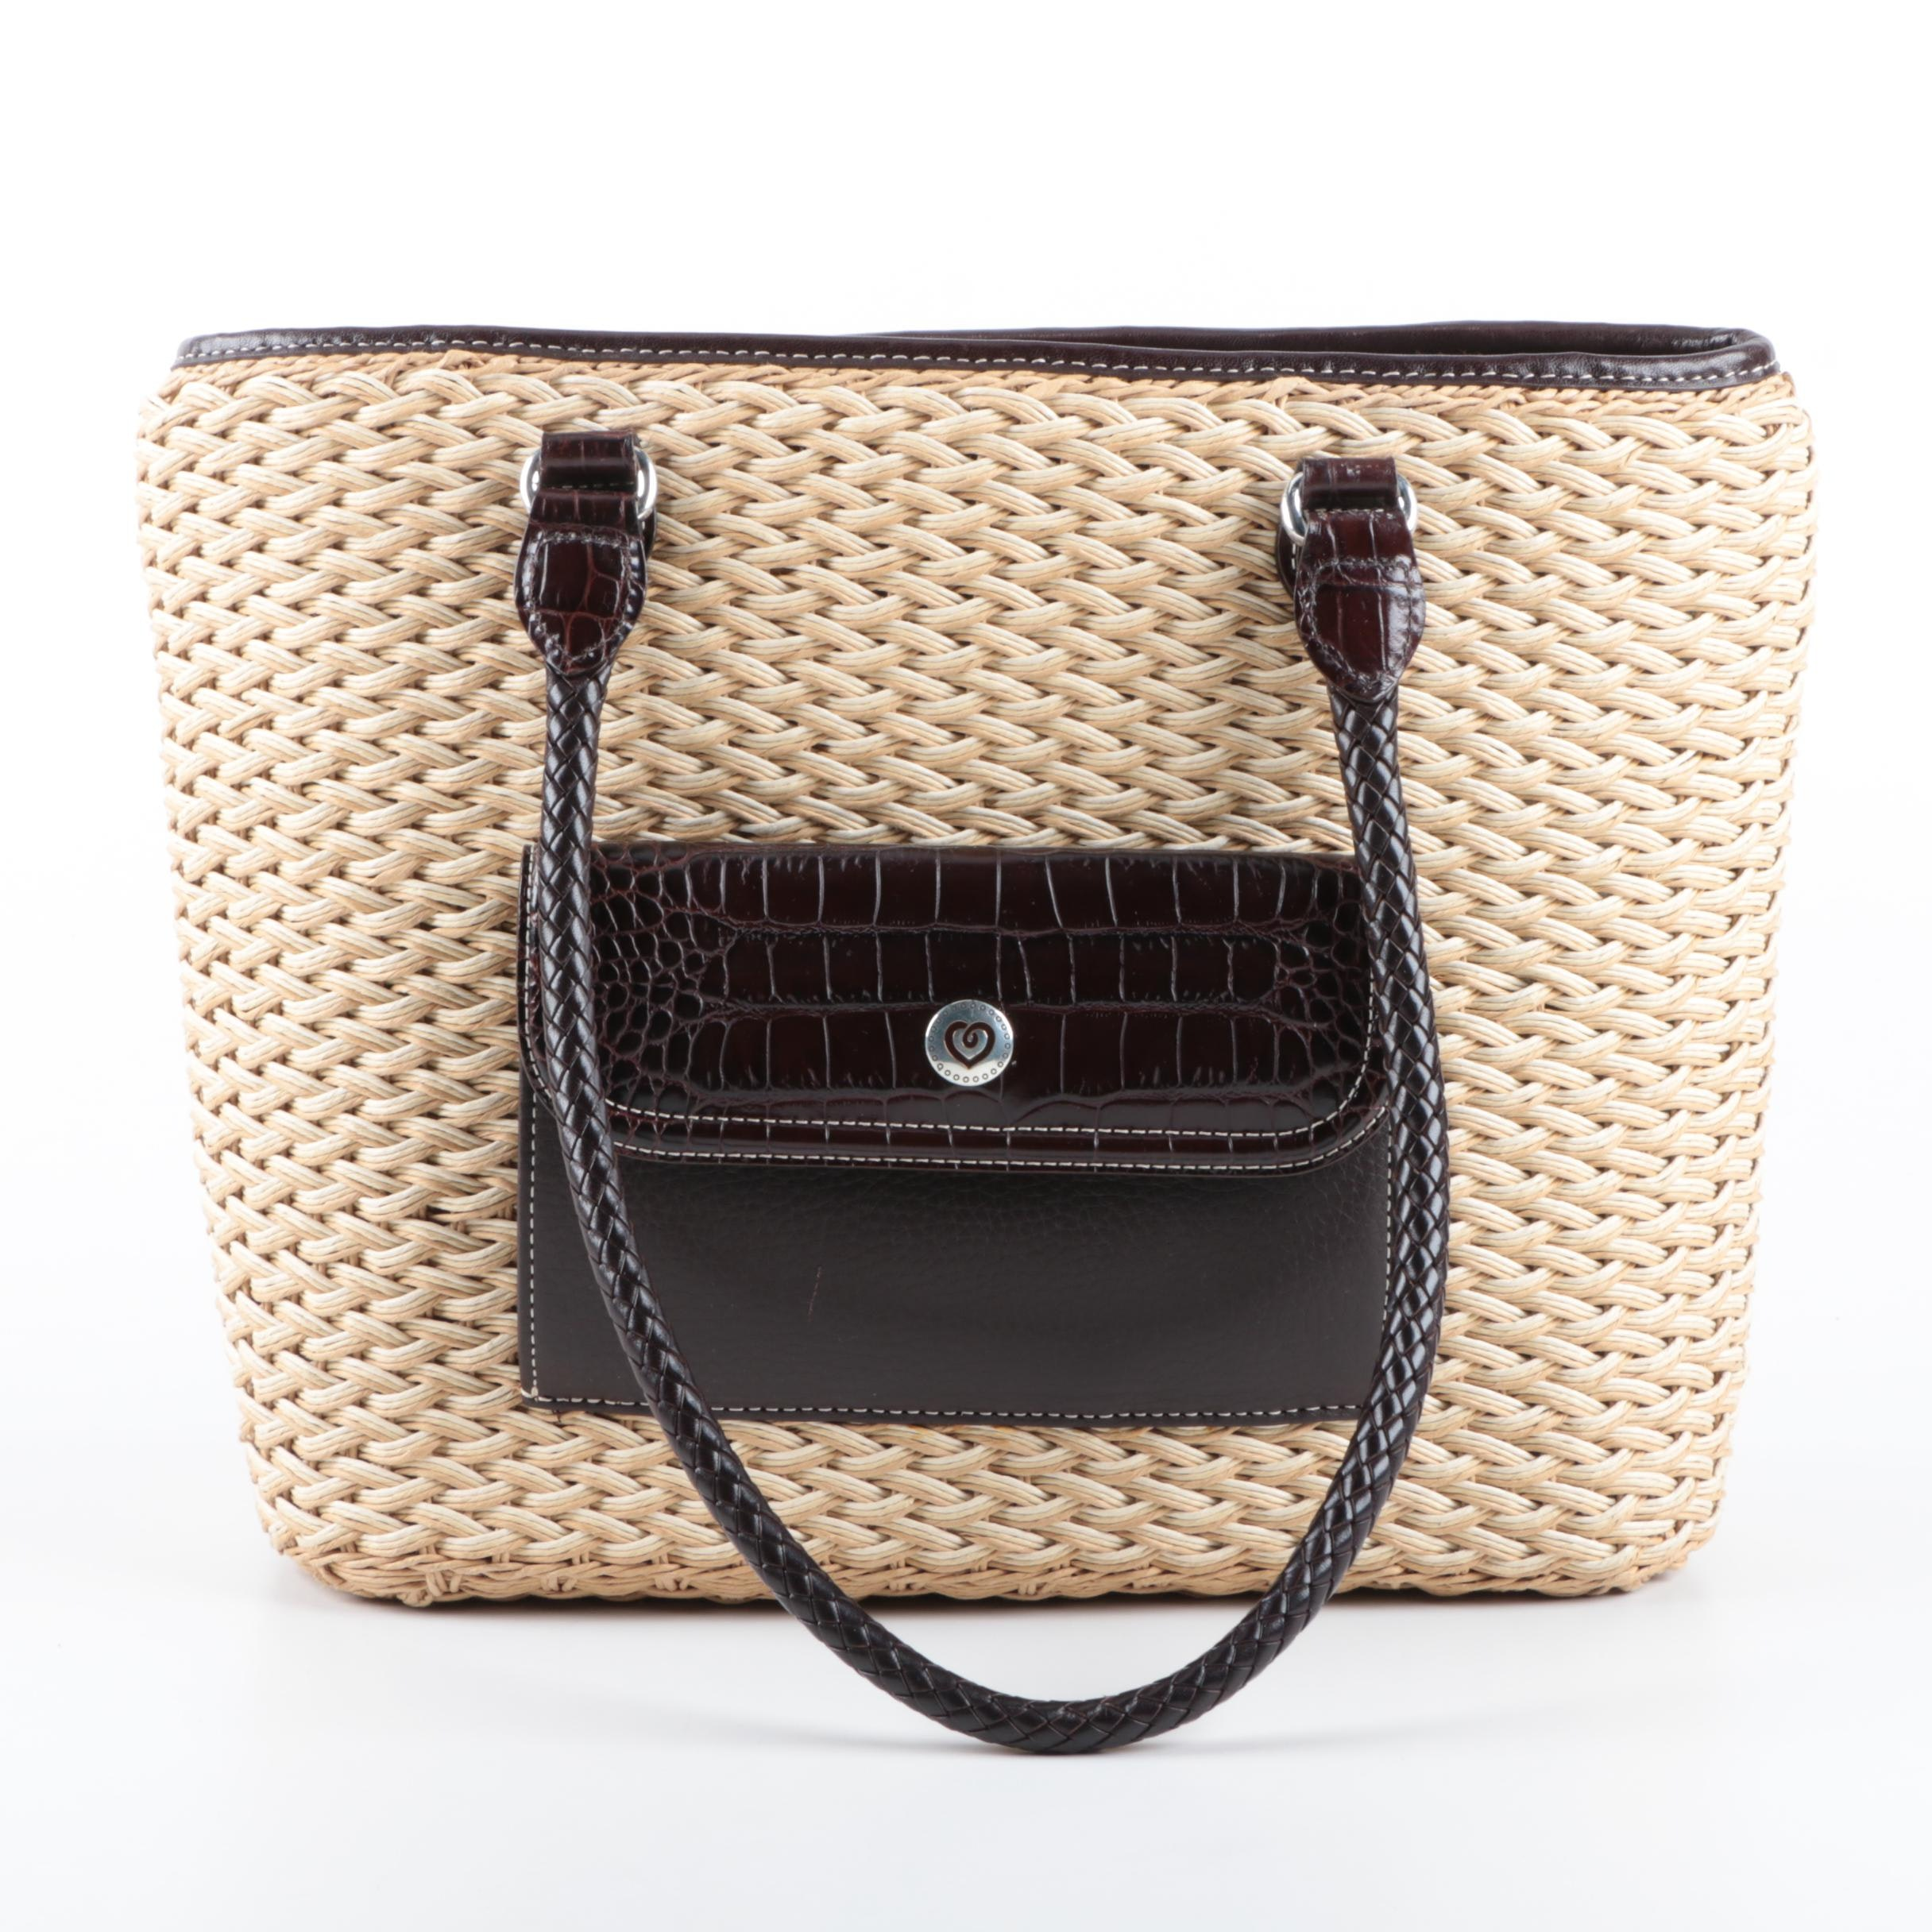 Brighton Wicker and Faux Leather Bag